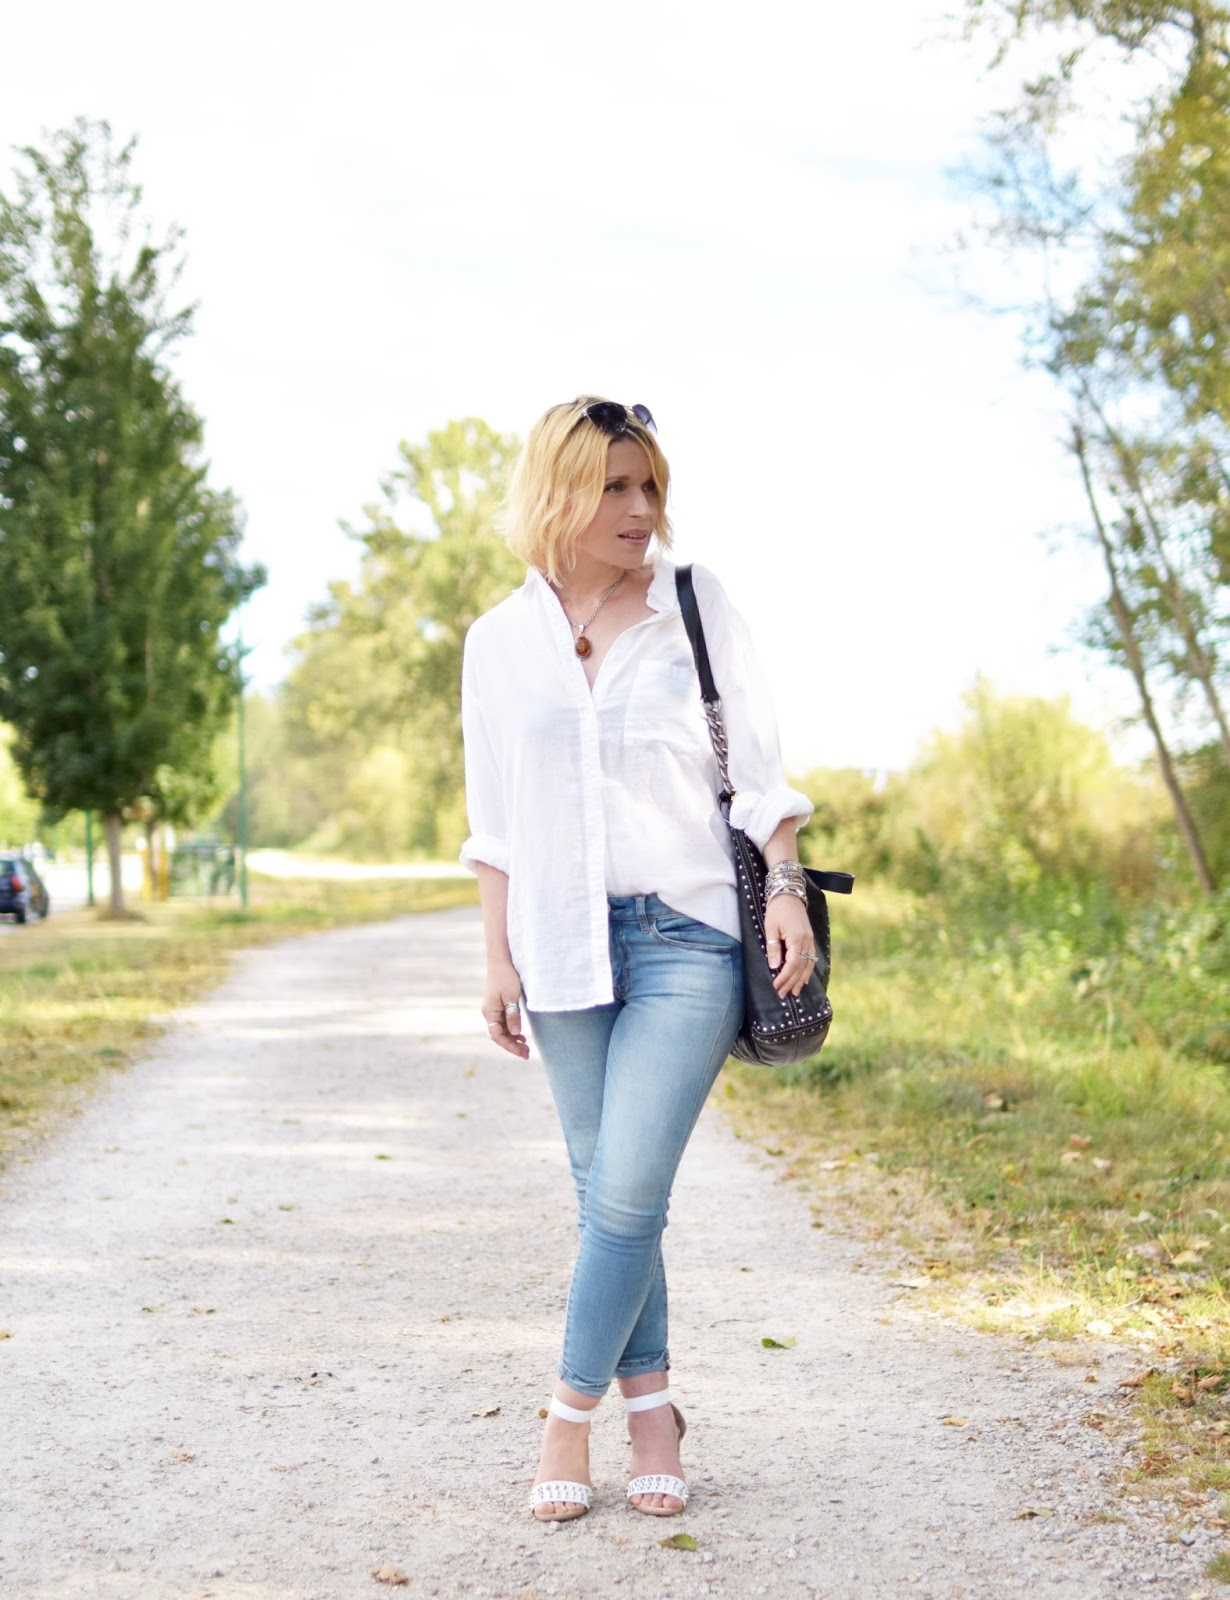 Monika Faulkner styles a white linen shirt with skinny jeans, block-heeled sandals, and an MK bag